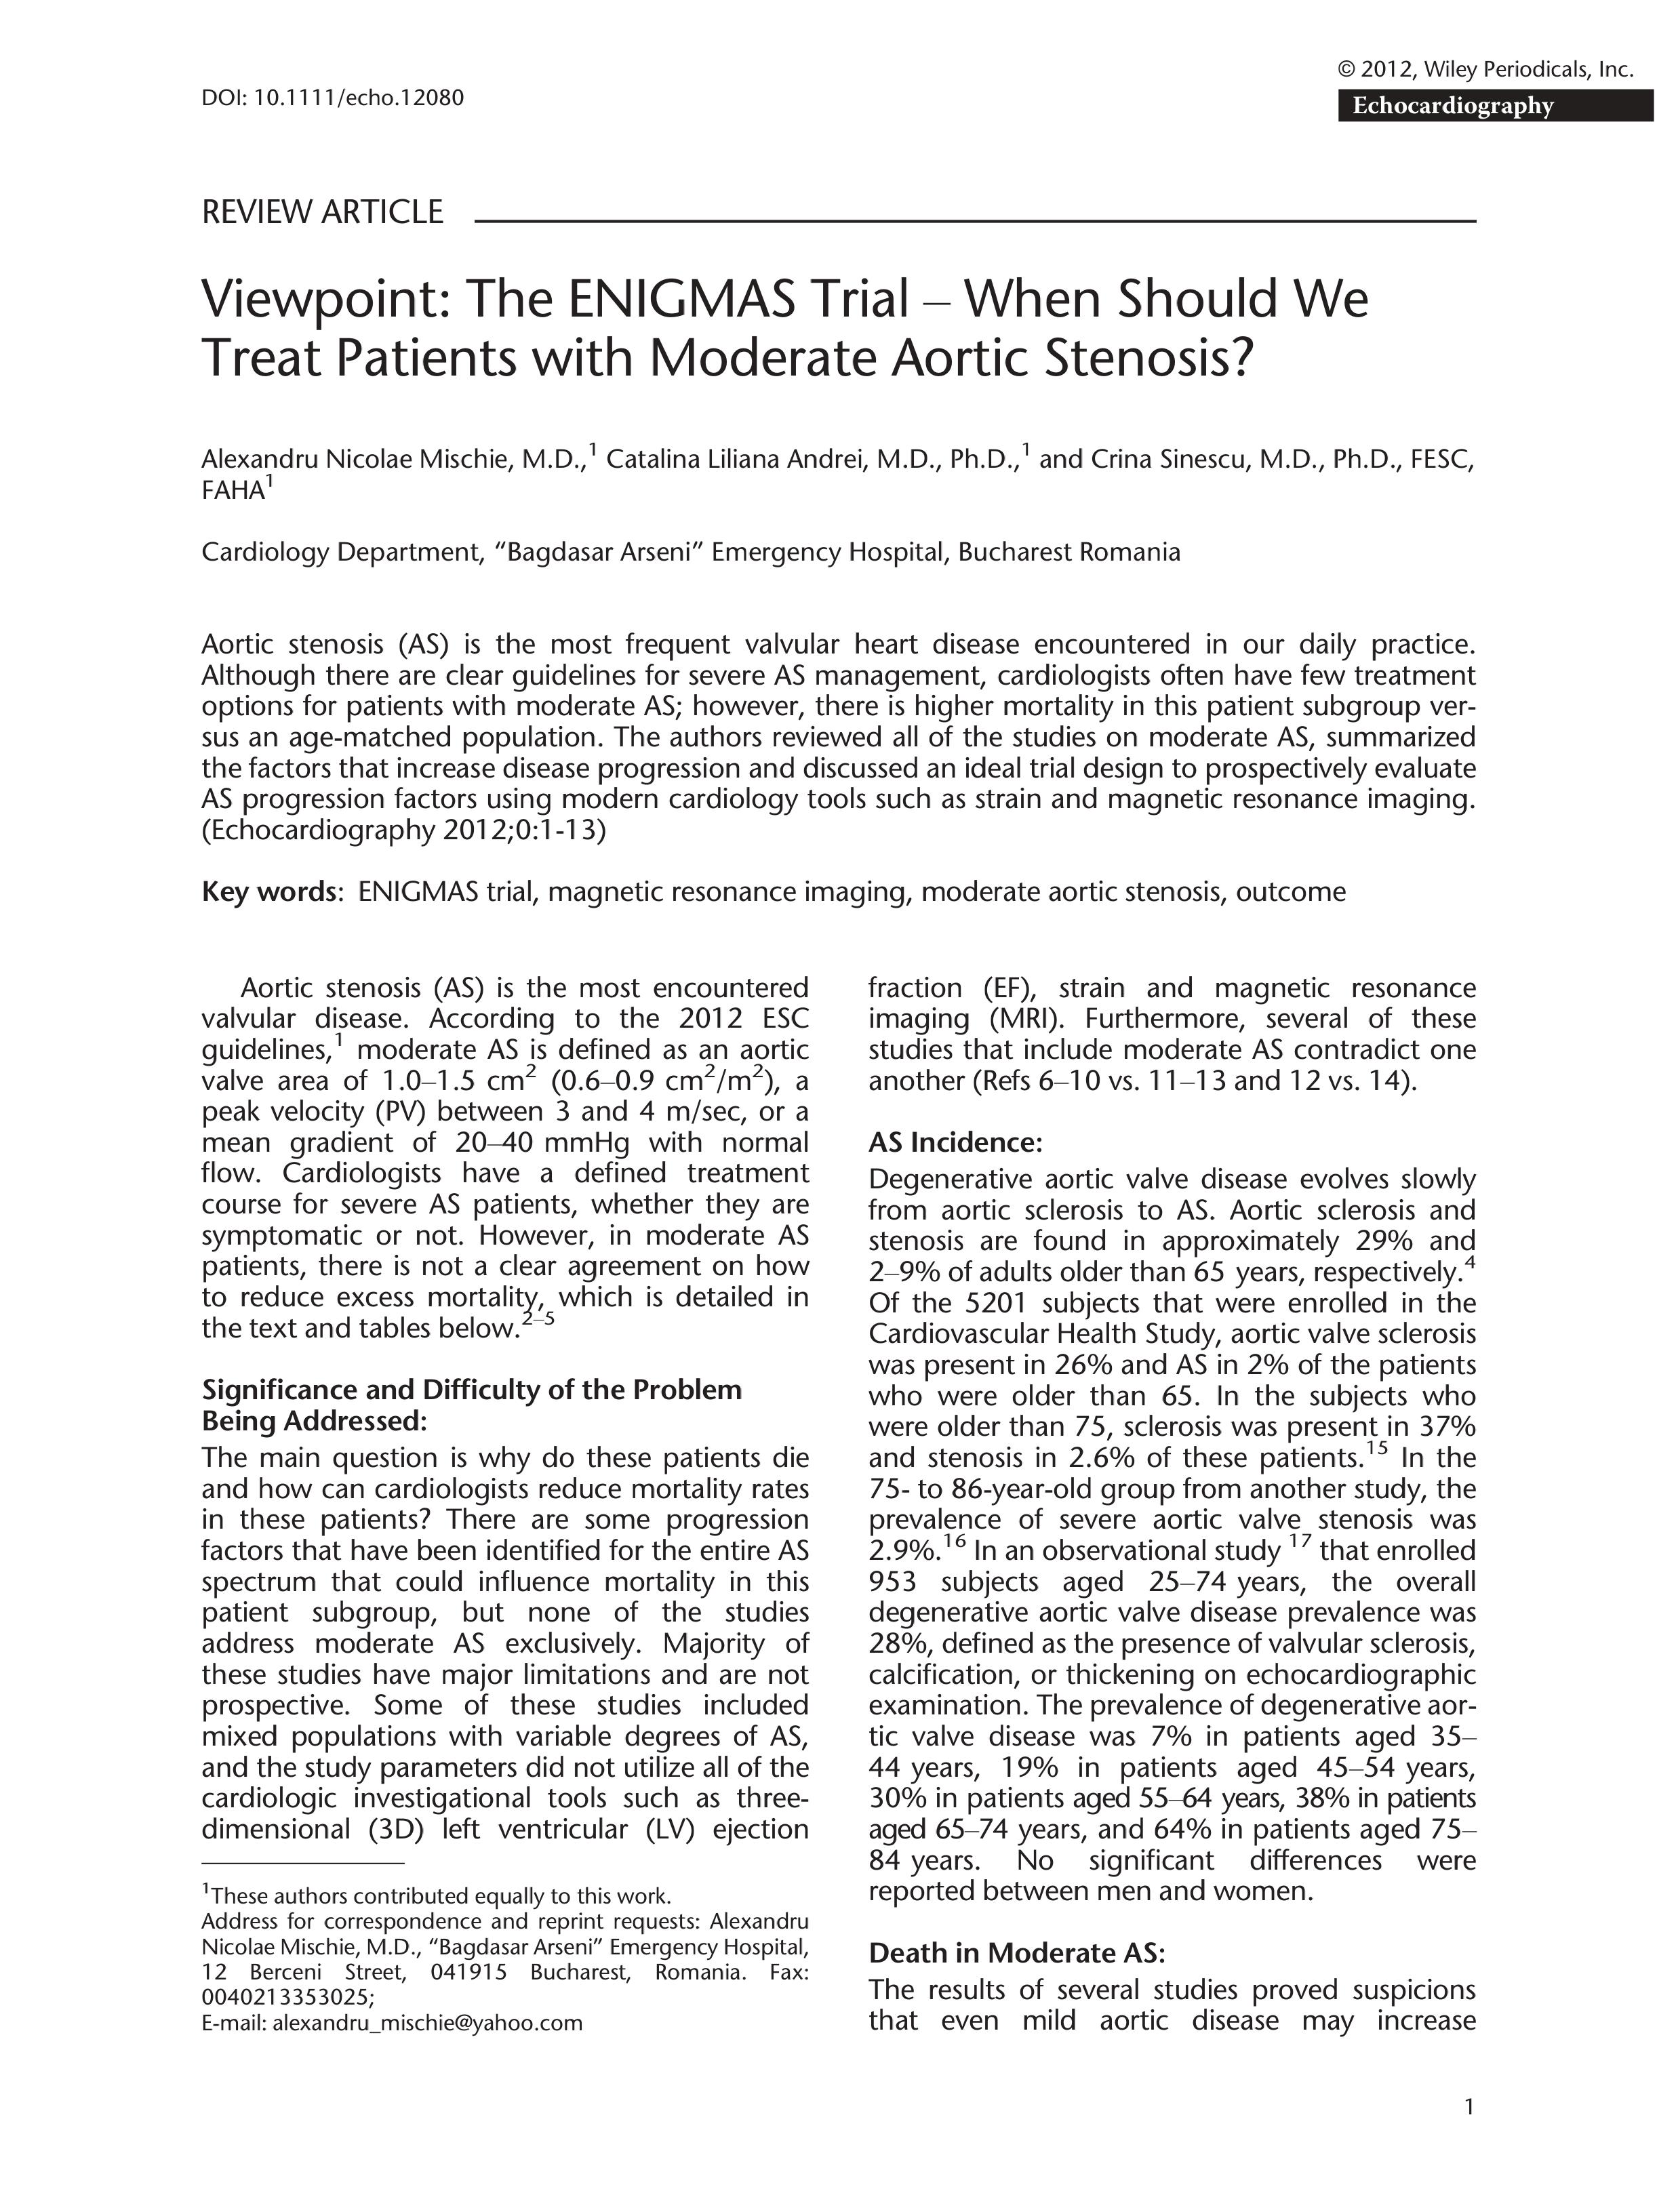 Viewpoint: The ENIGMAS trial - When should we treat patients with moderate aortic stenosis ?